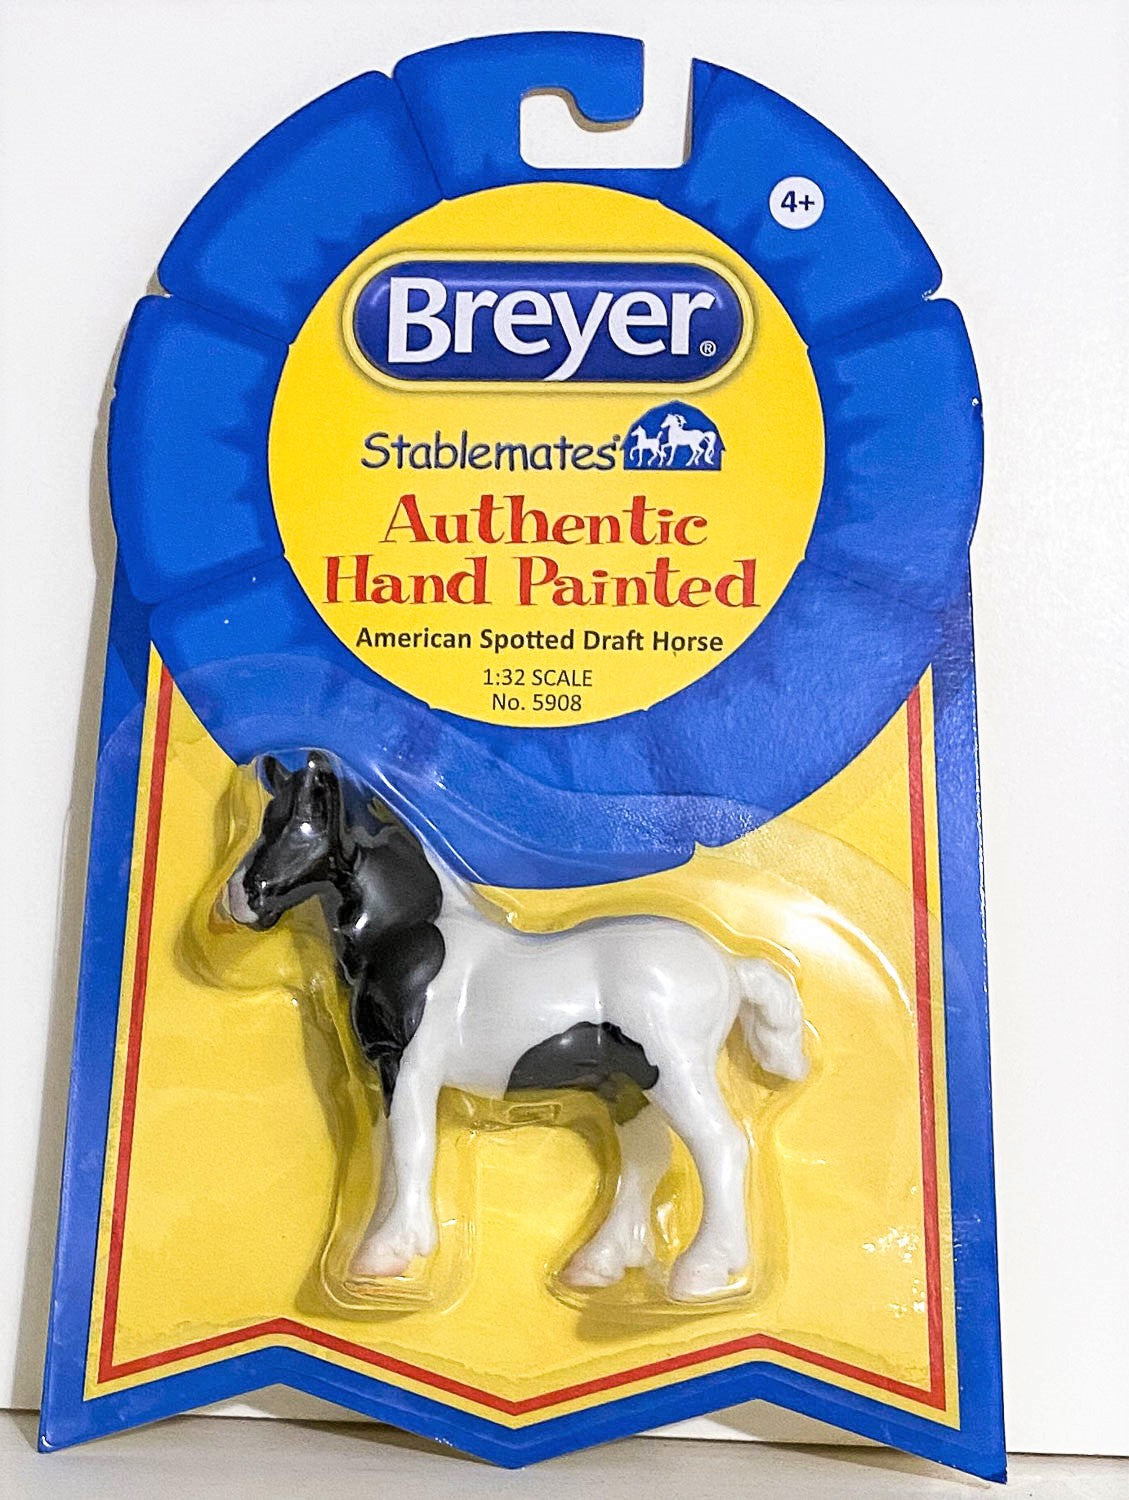 Breyer Stablemates American Spotted Draft Horse Black Pinto 5908 Triple Mountain Model Horses